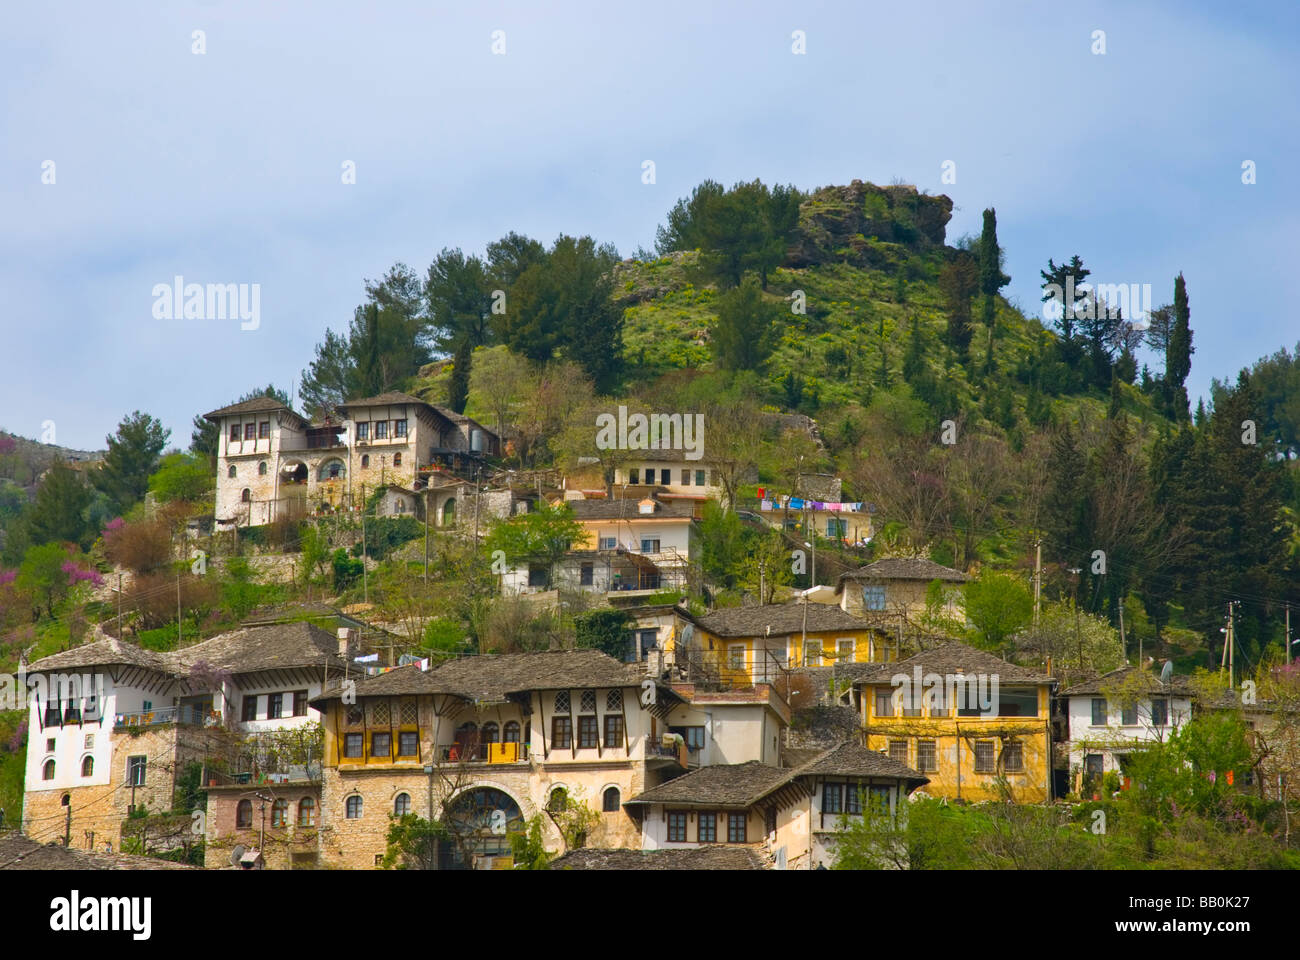 Houses on side of a hill Gjirokastra birthplace of former dictator Enver Hoxha in Southern Albania Europe - Stock Image